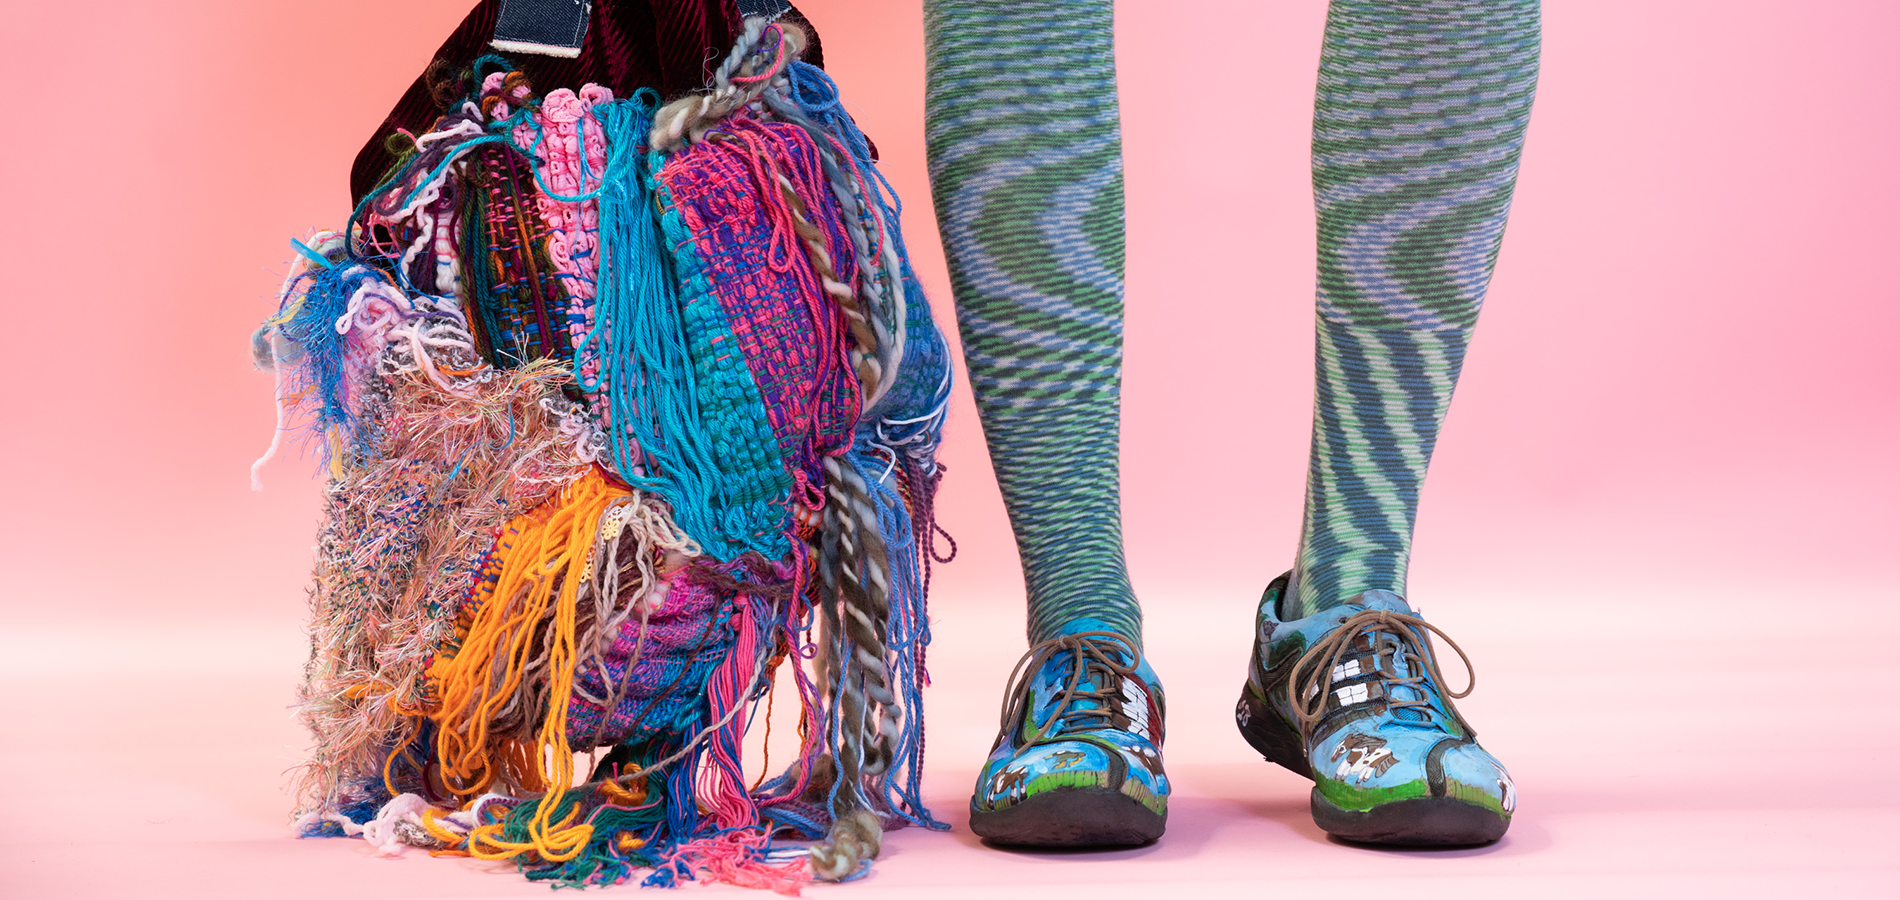 Colorful textile bag hanging down next to legs and shoes